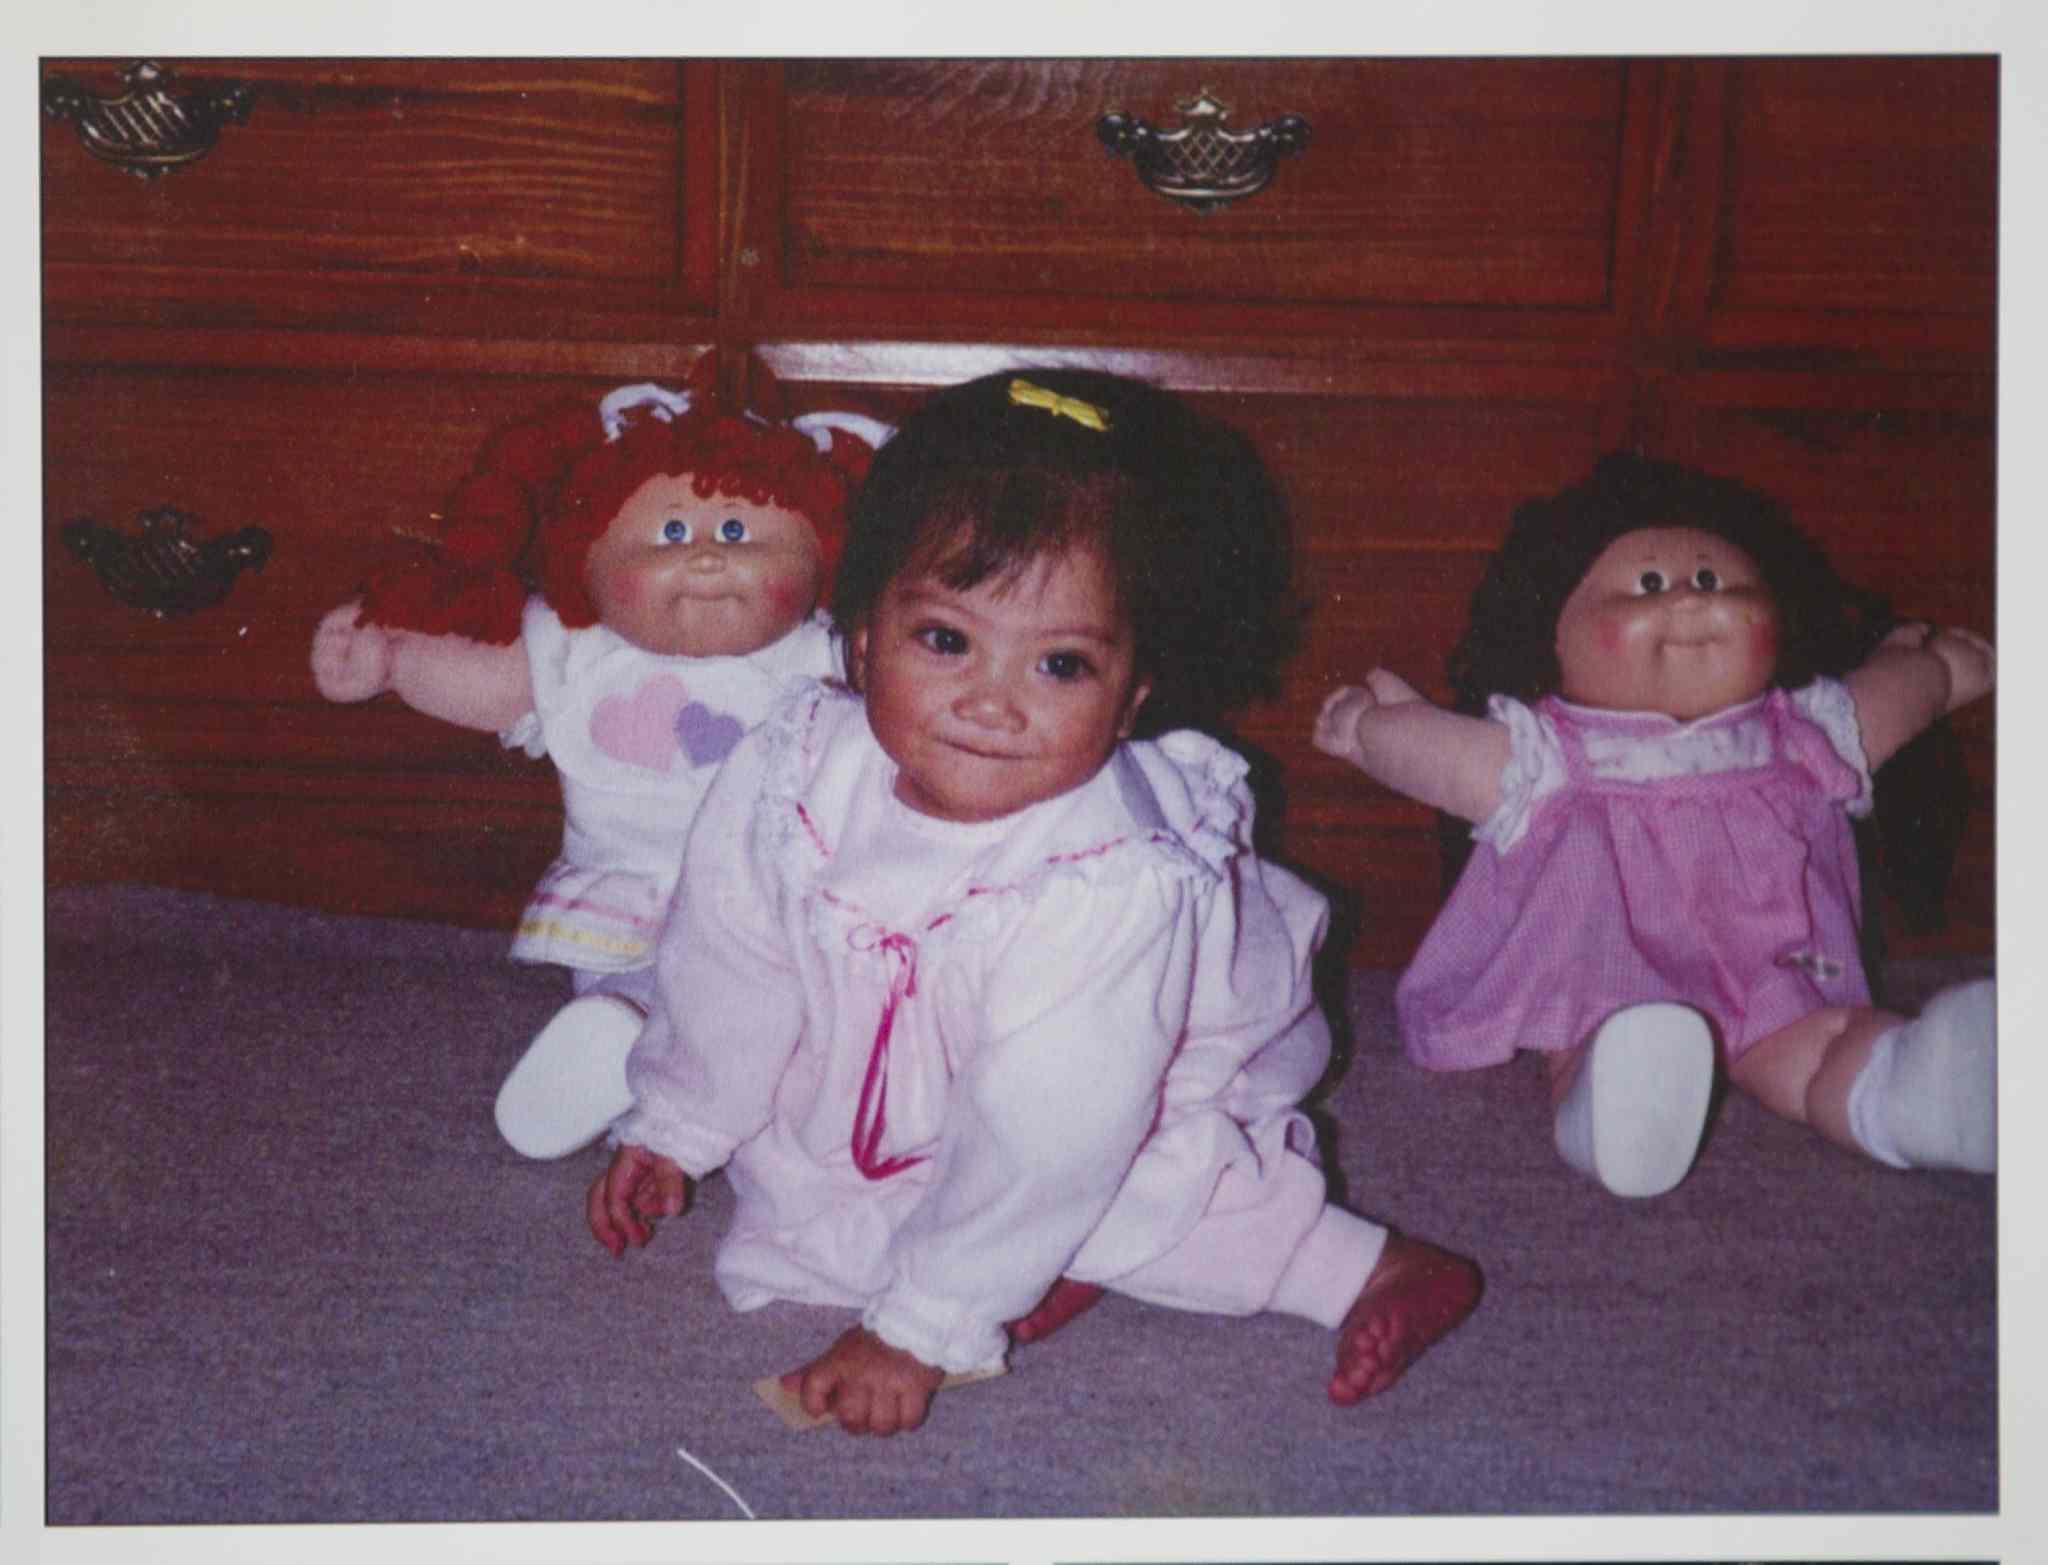 Marietess was born in 1991. She underwent surgery in 1994 to fix her heart defects, but didn't survive.